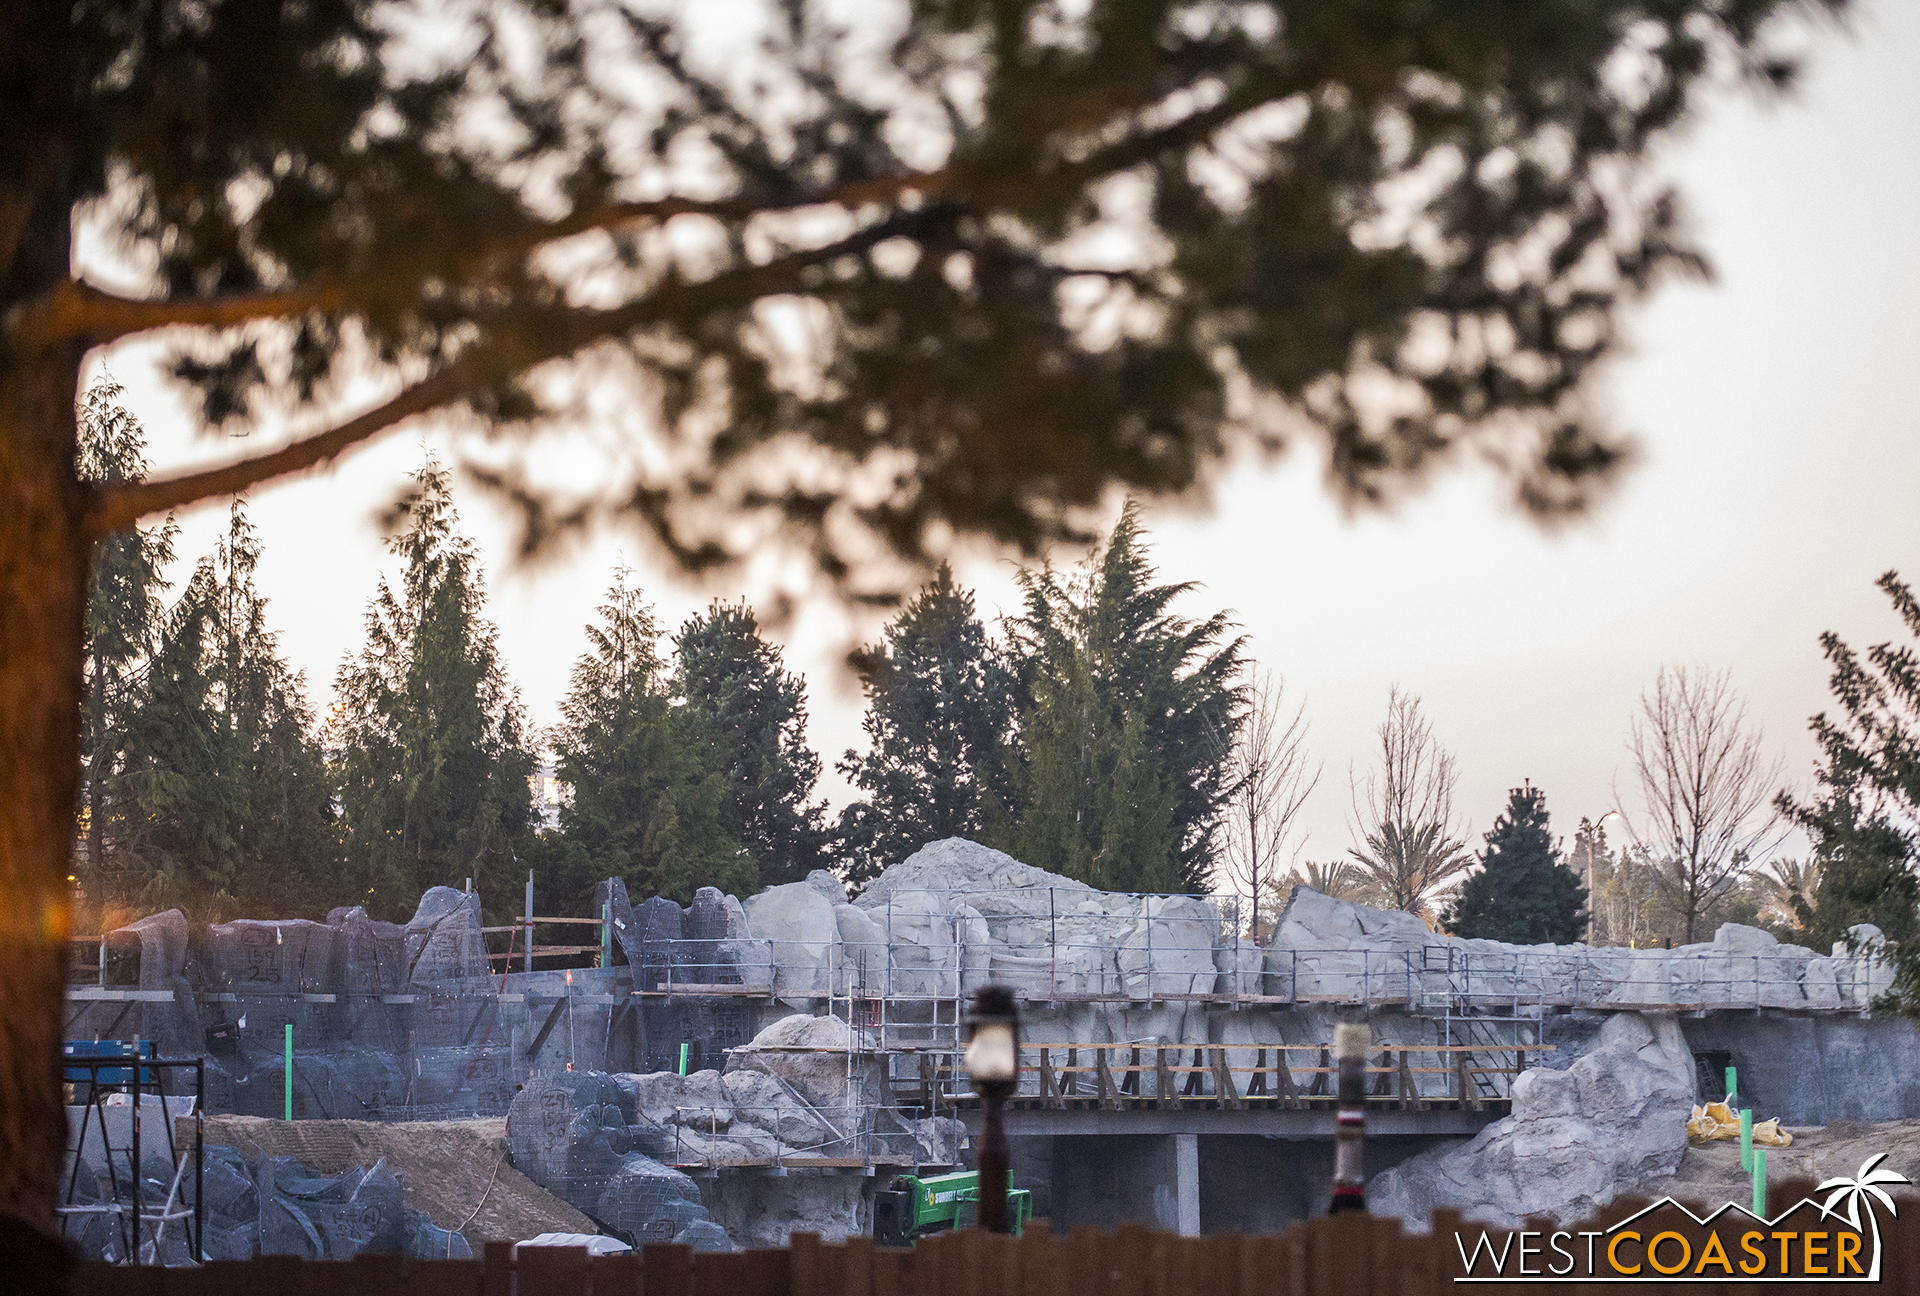 From the Critter Country pathway over toward Hungry Bear, the tops of the rockwork can be seen, plus the route of the redone Disneyland Railroad.